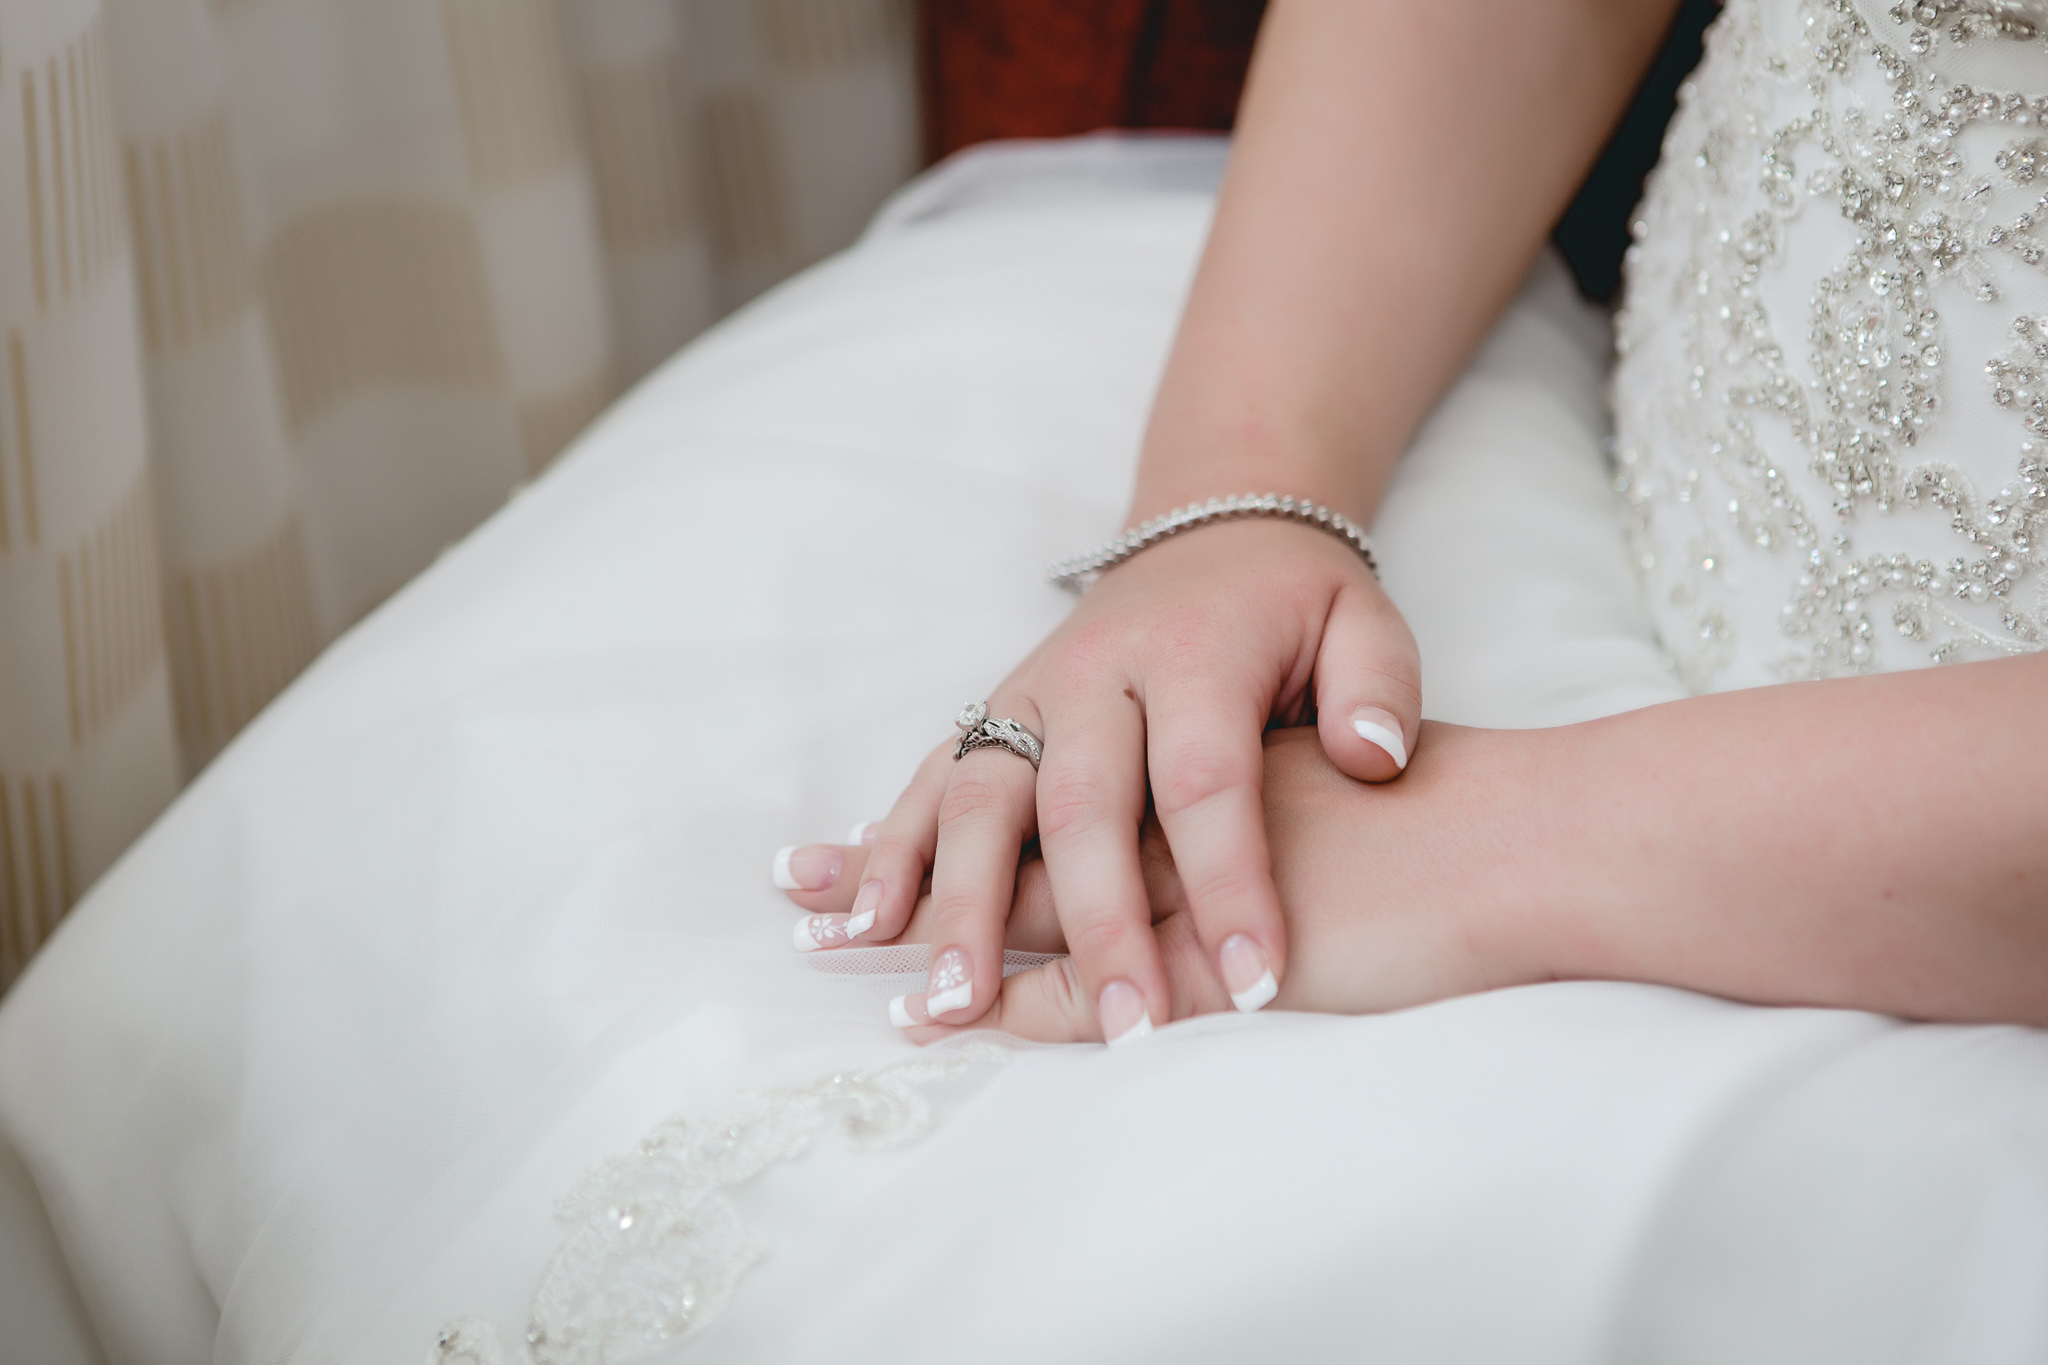 Bride's hands in her lap as she patiently waits for her wedding ceremony to begin